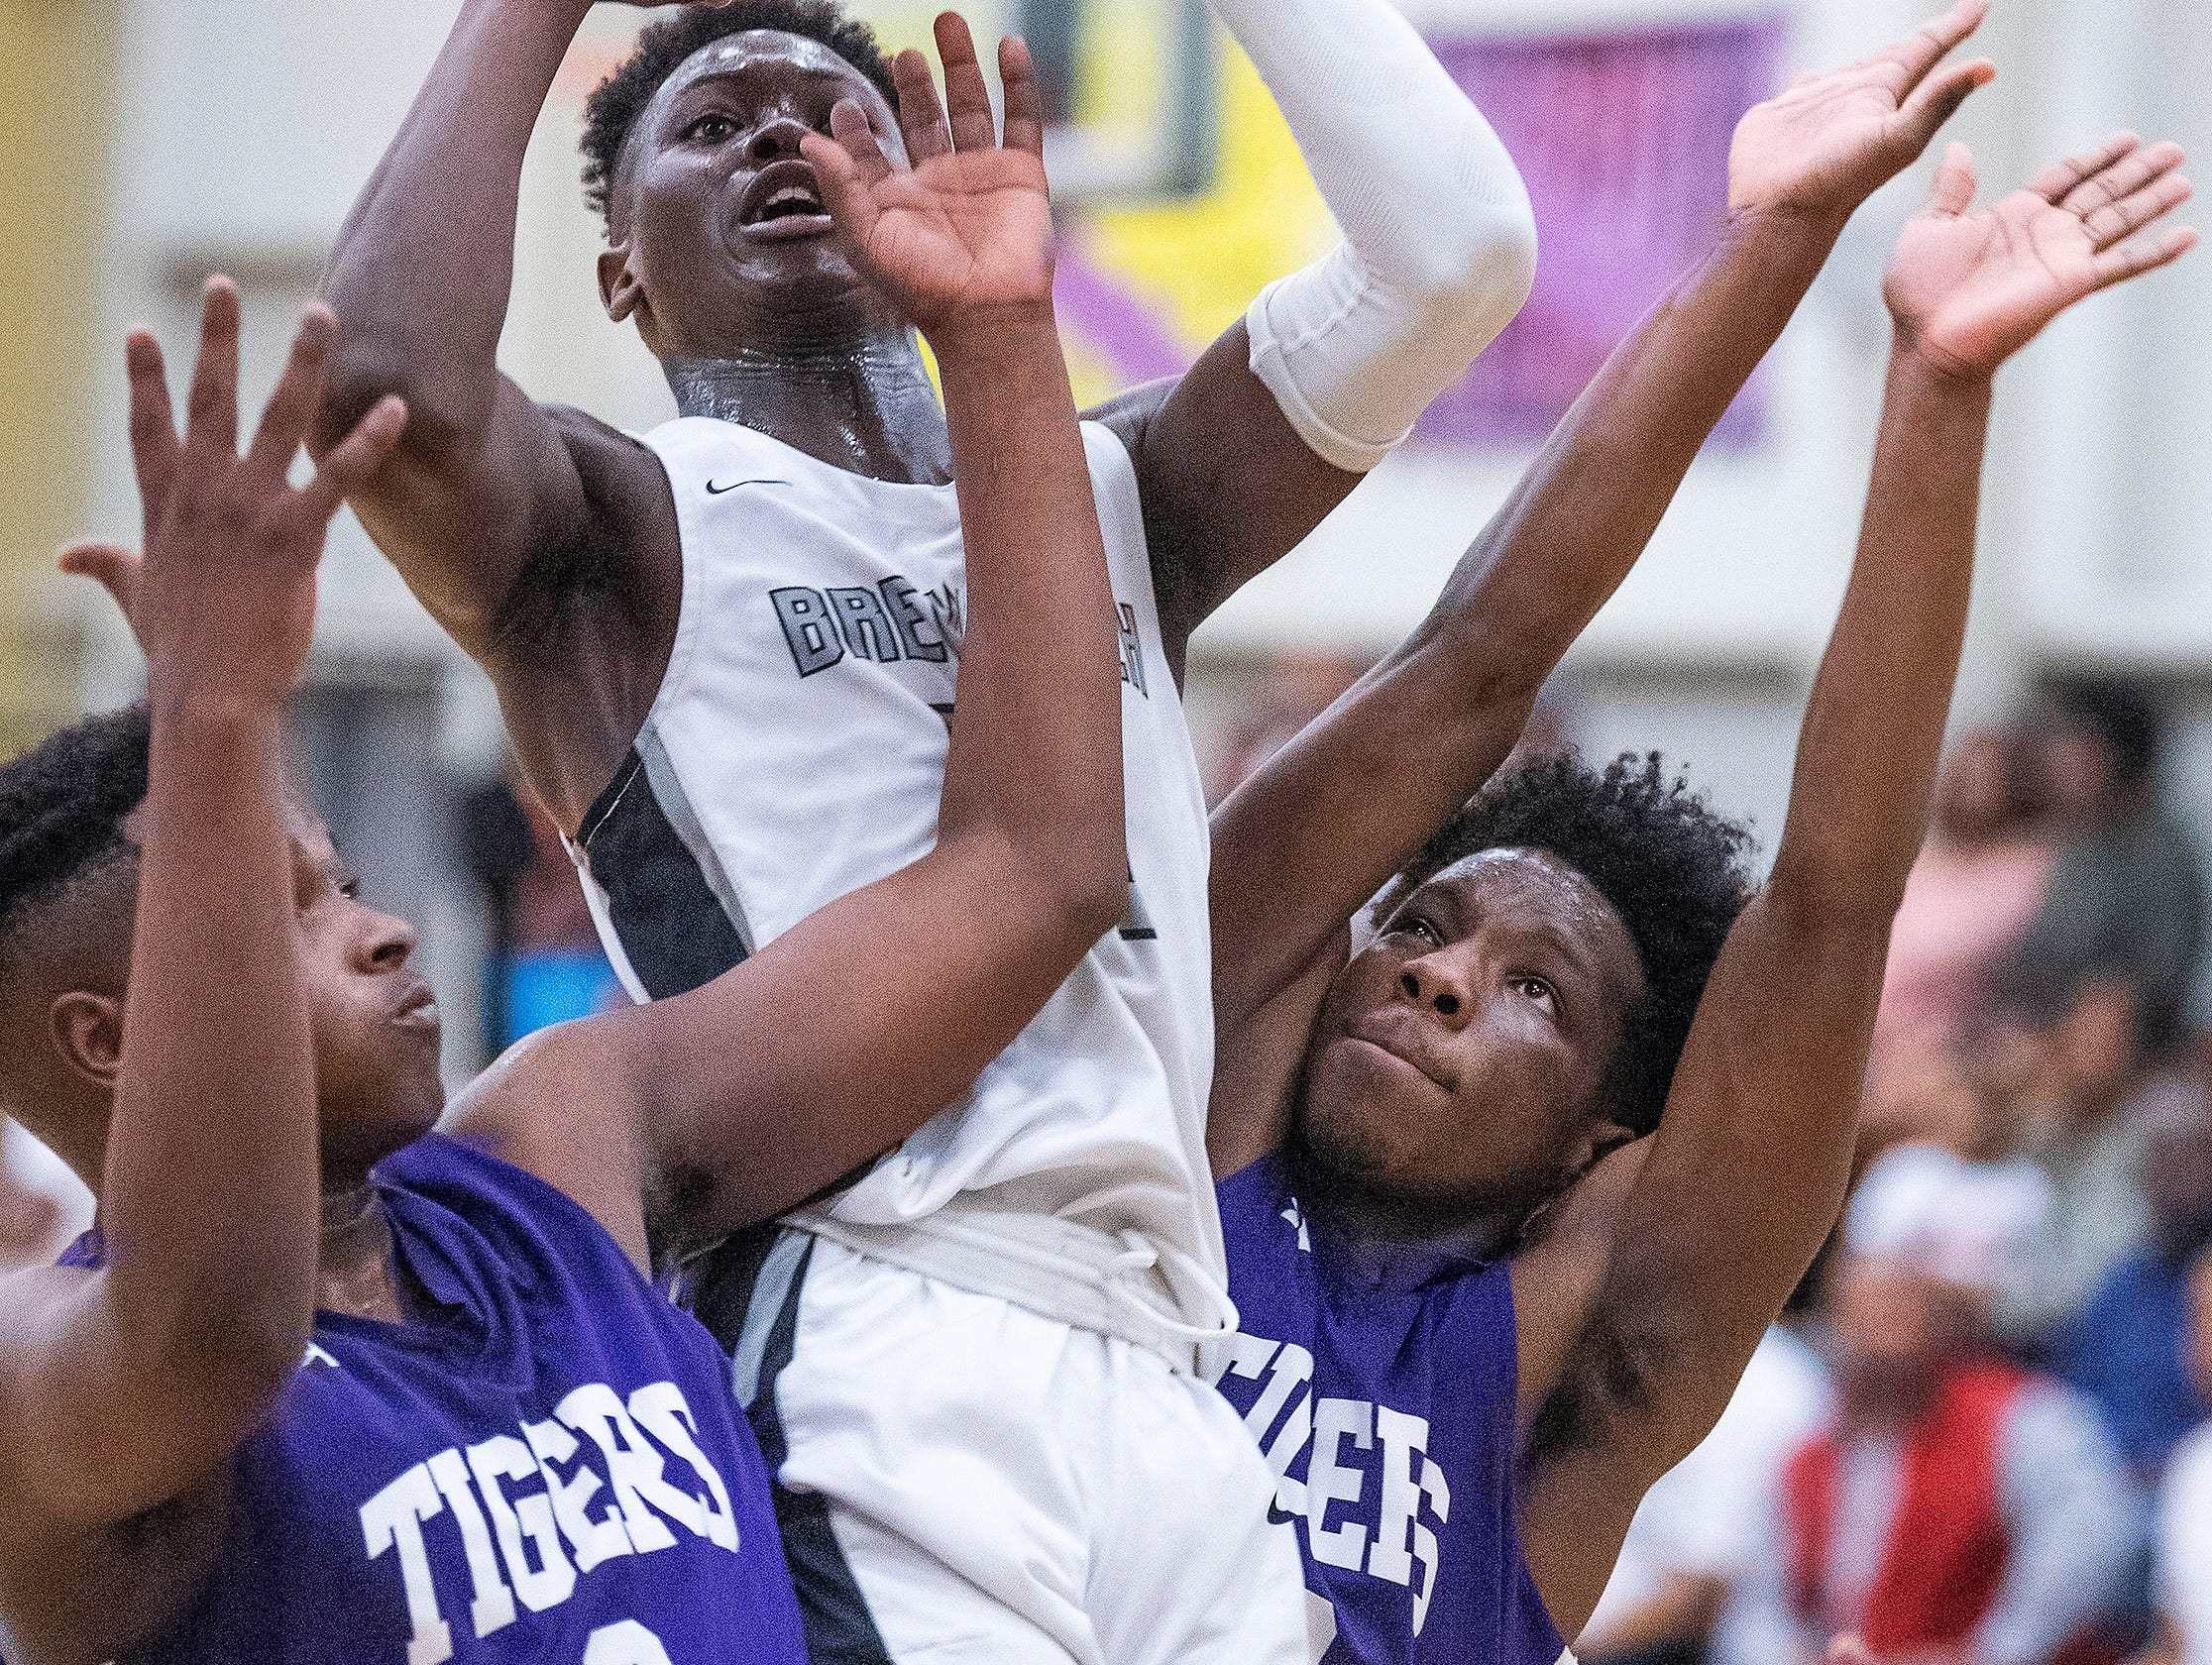 Brewbaker Tech's Desmond Williams (10) is double teamed by Tallassee's Sandarius Hughley (2) and Jaleel Dumas (3) at the BrewTech campus in Montgomery, Ala., on Thursday February 7, 2019.